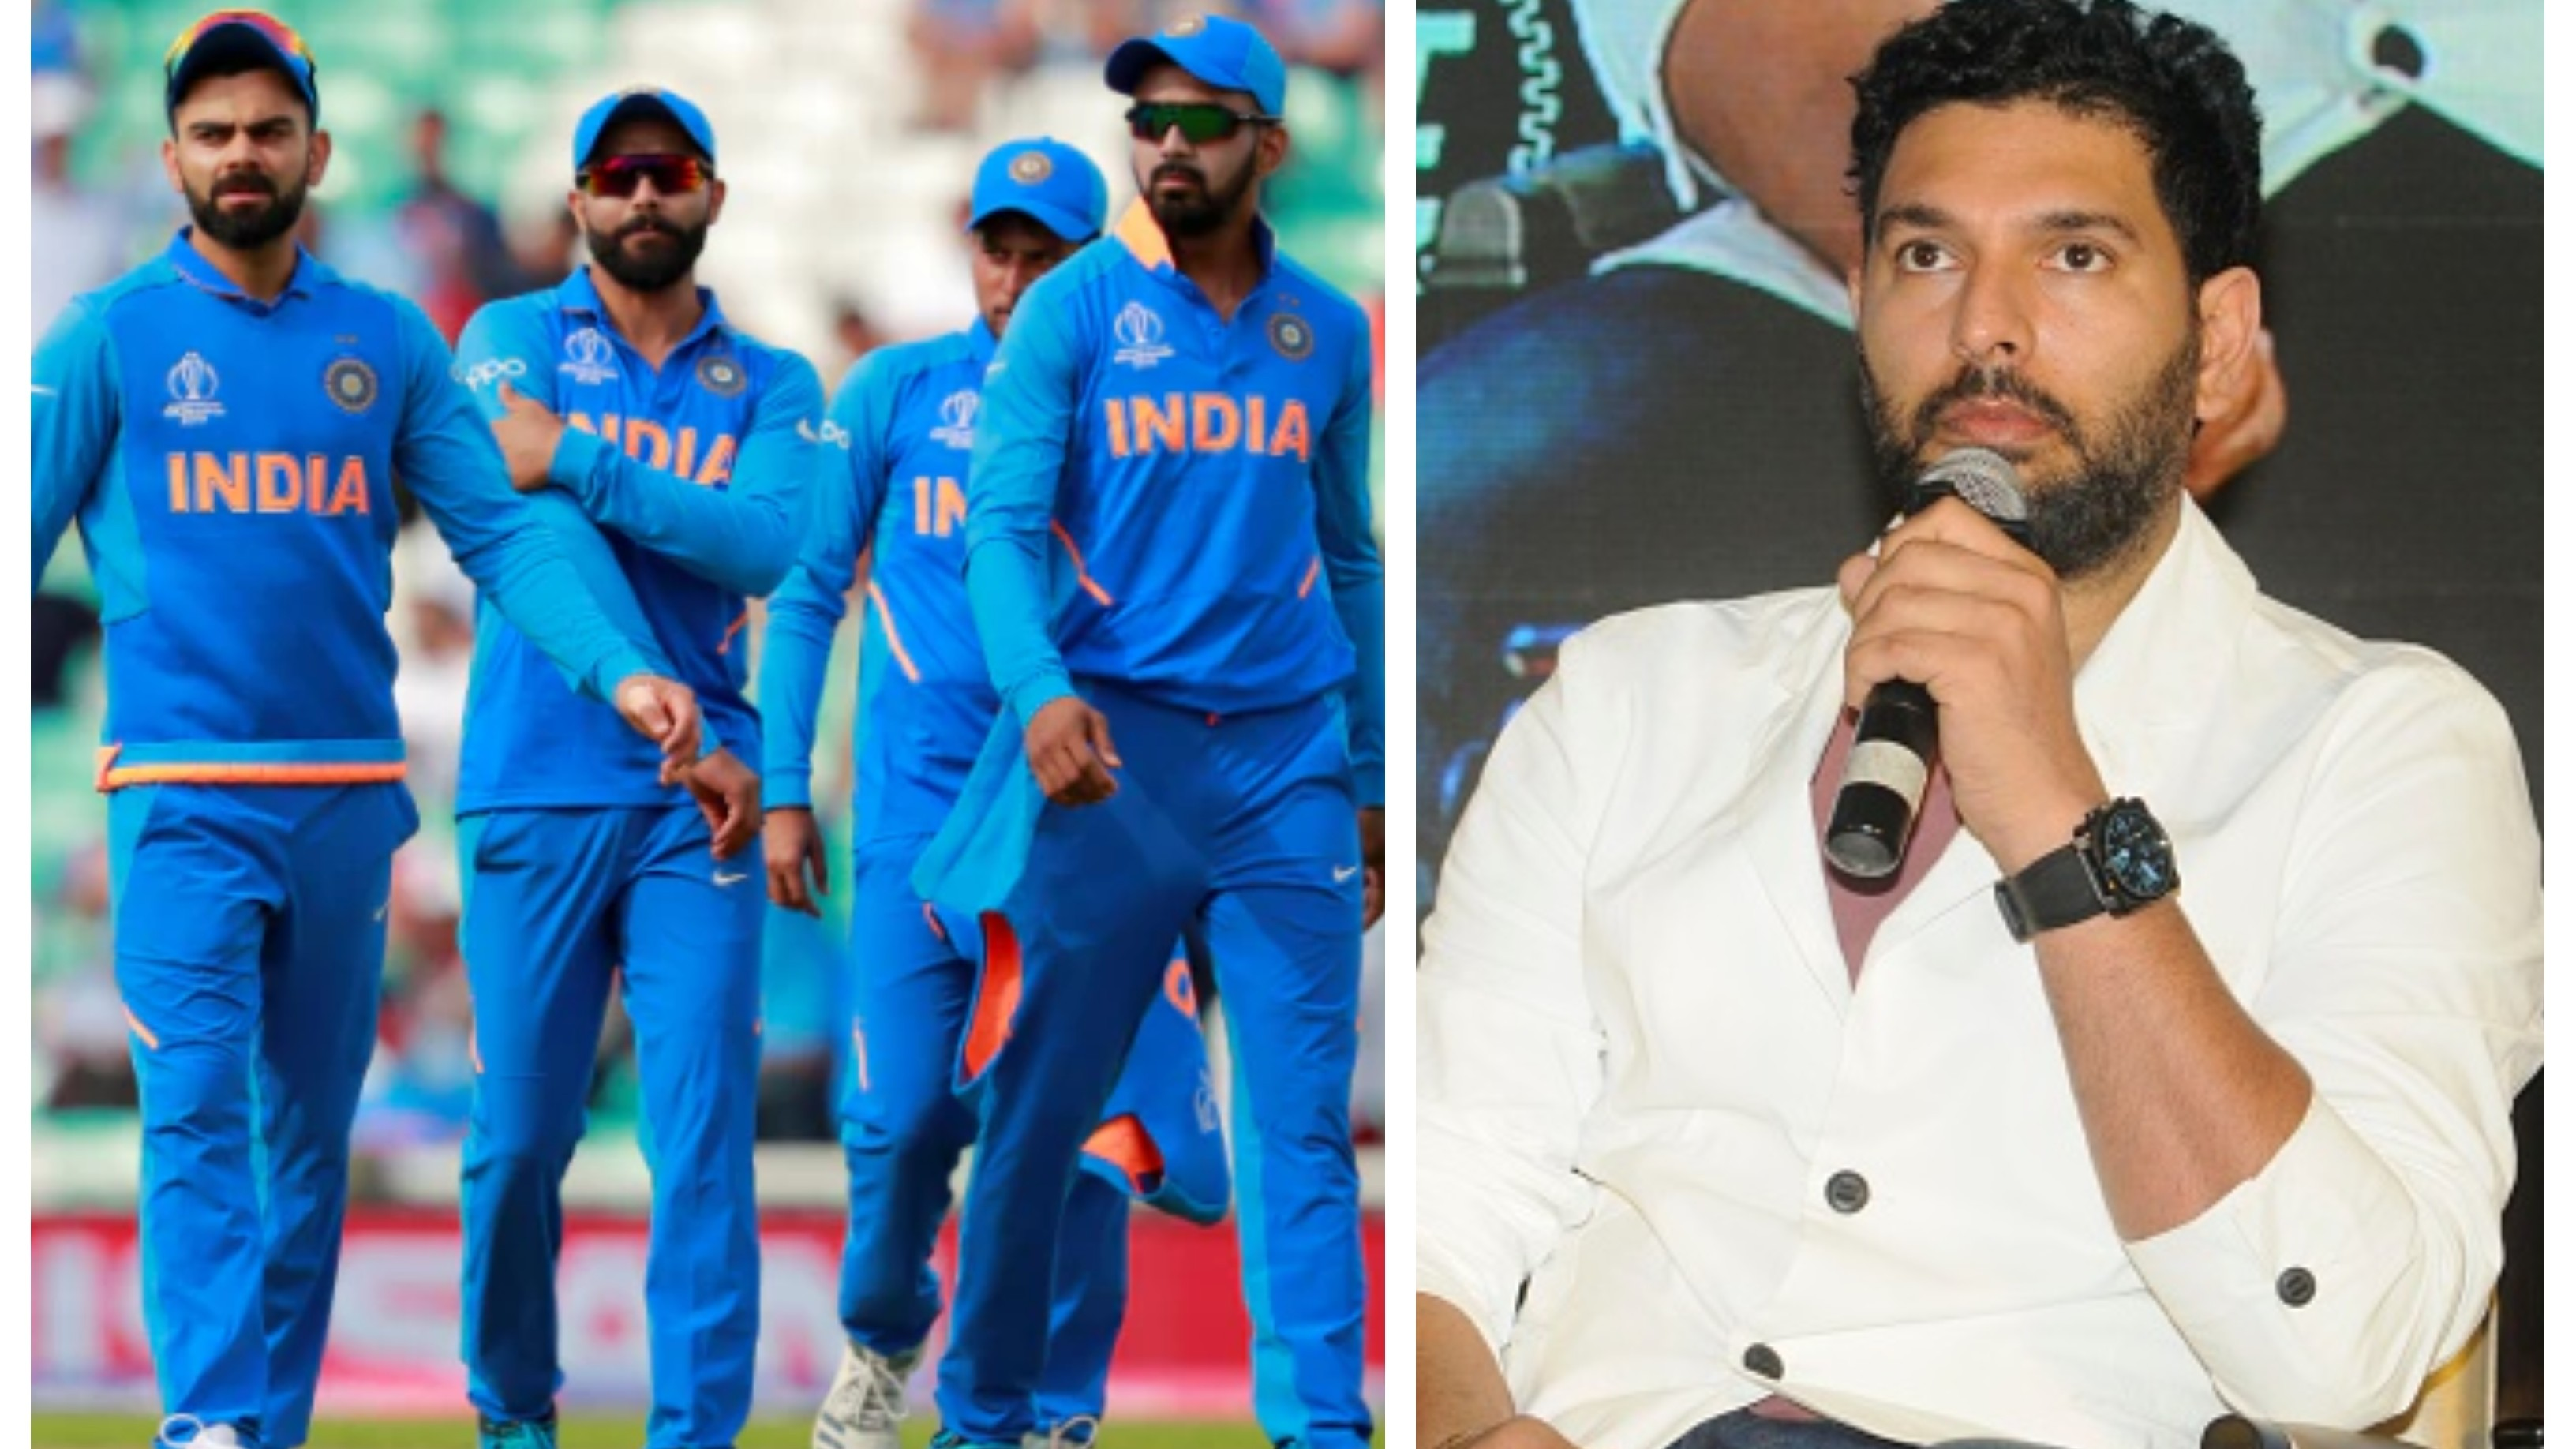 Indian cricketers compelled to play a lot of times as they fear losing their place, claims Yuvraj Singh